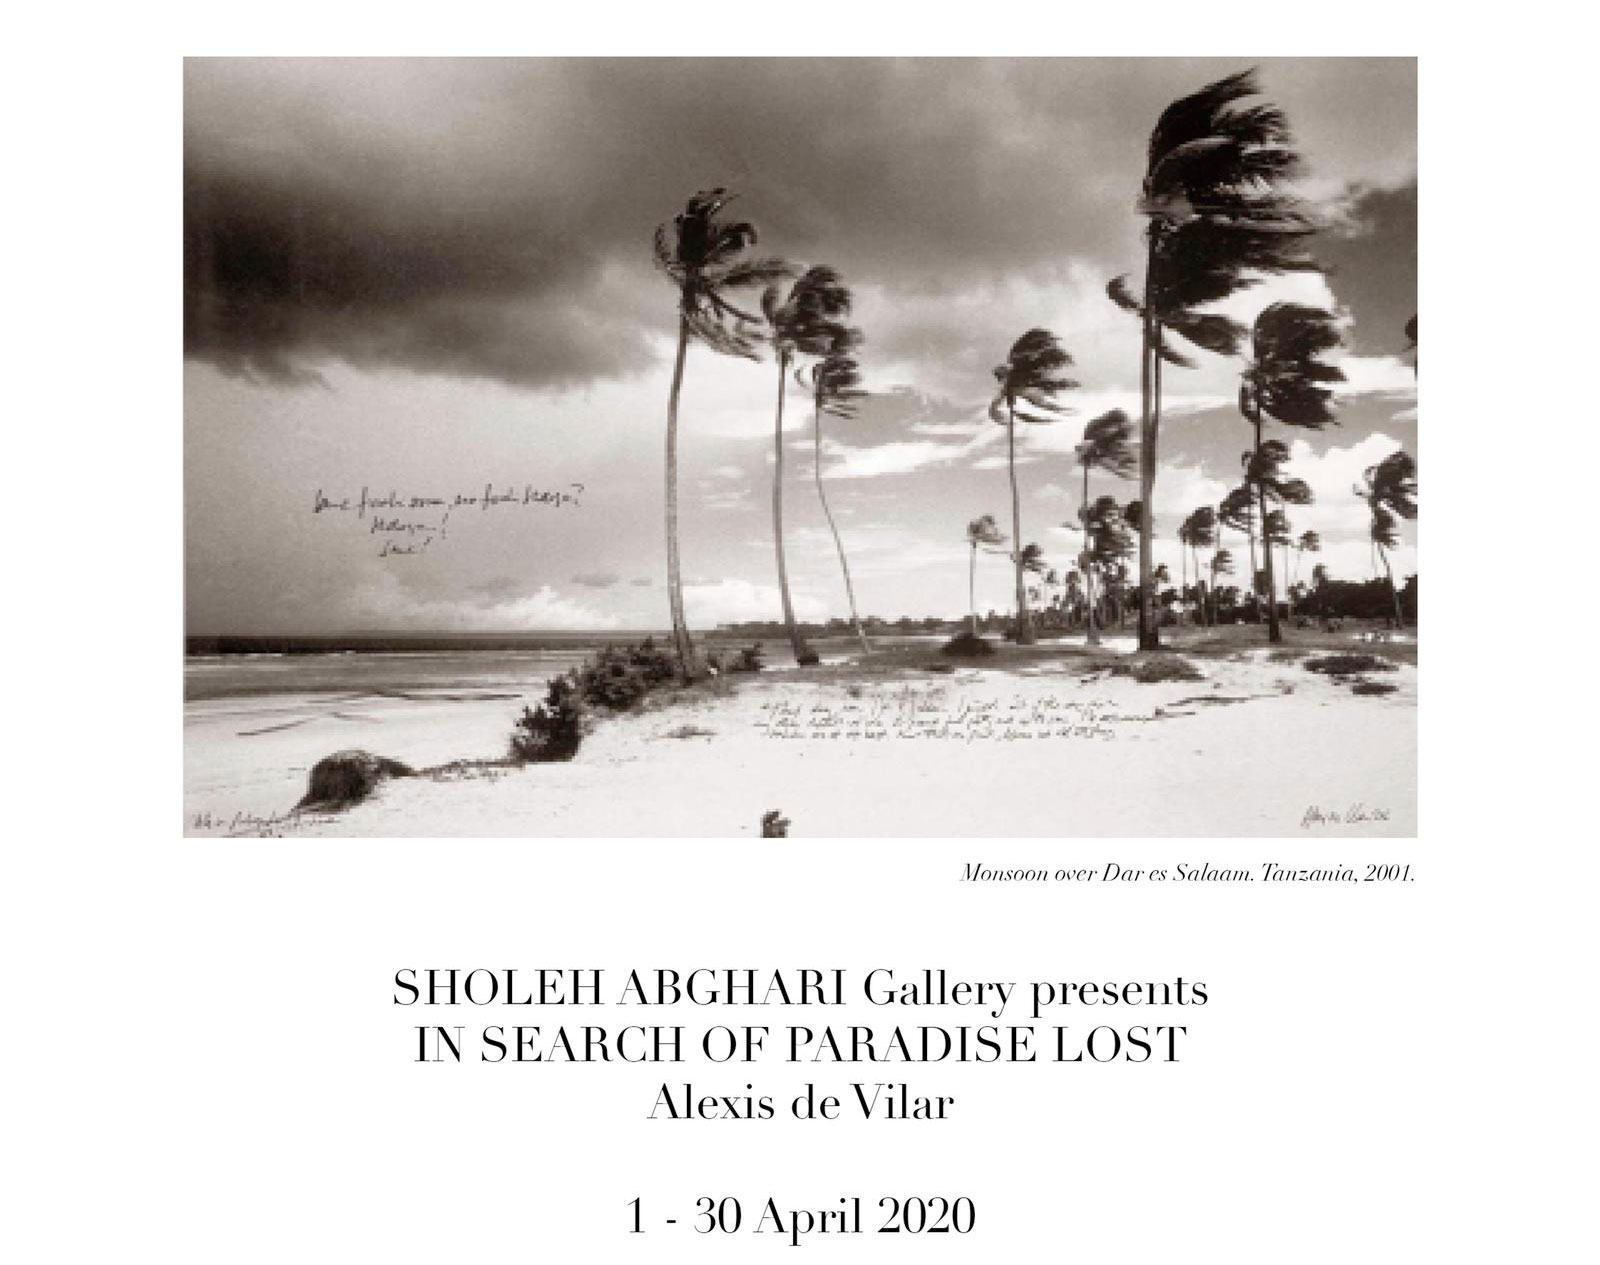 art gallery marbella sholeh abghari in search of paradise lost alexis de vilar